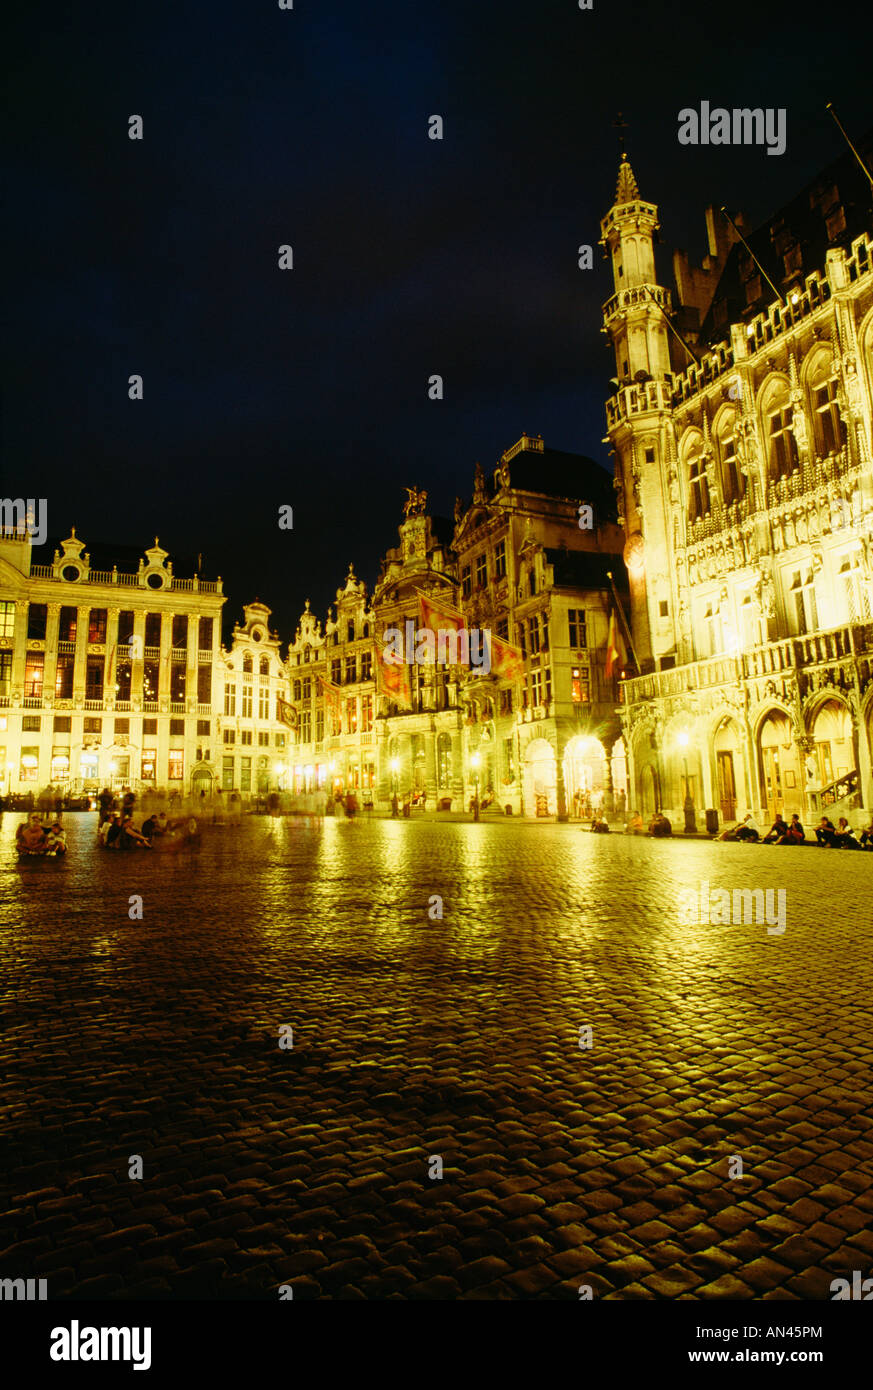 Grand Place at night, Brussels, Belgium - Stock Image